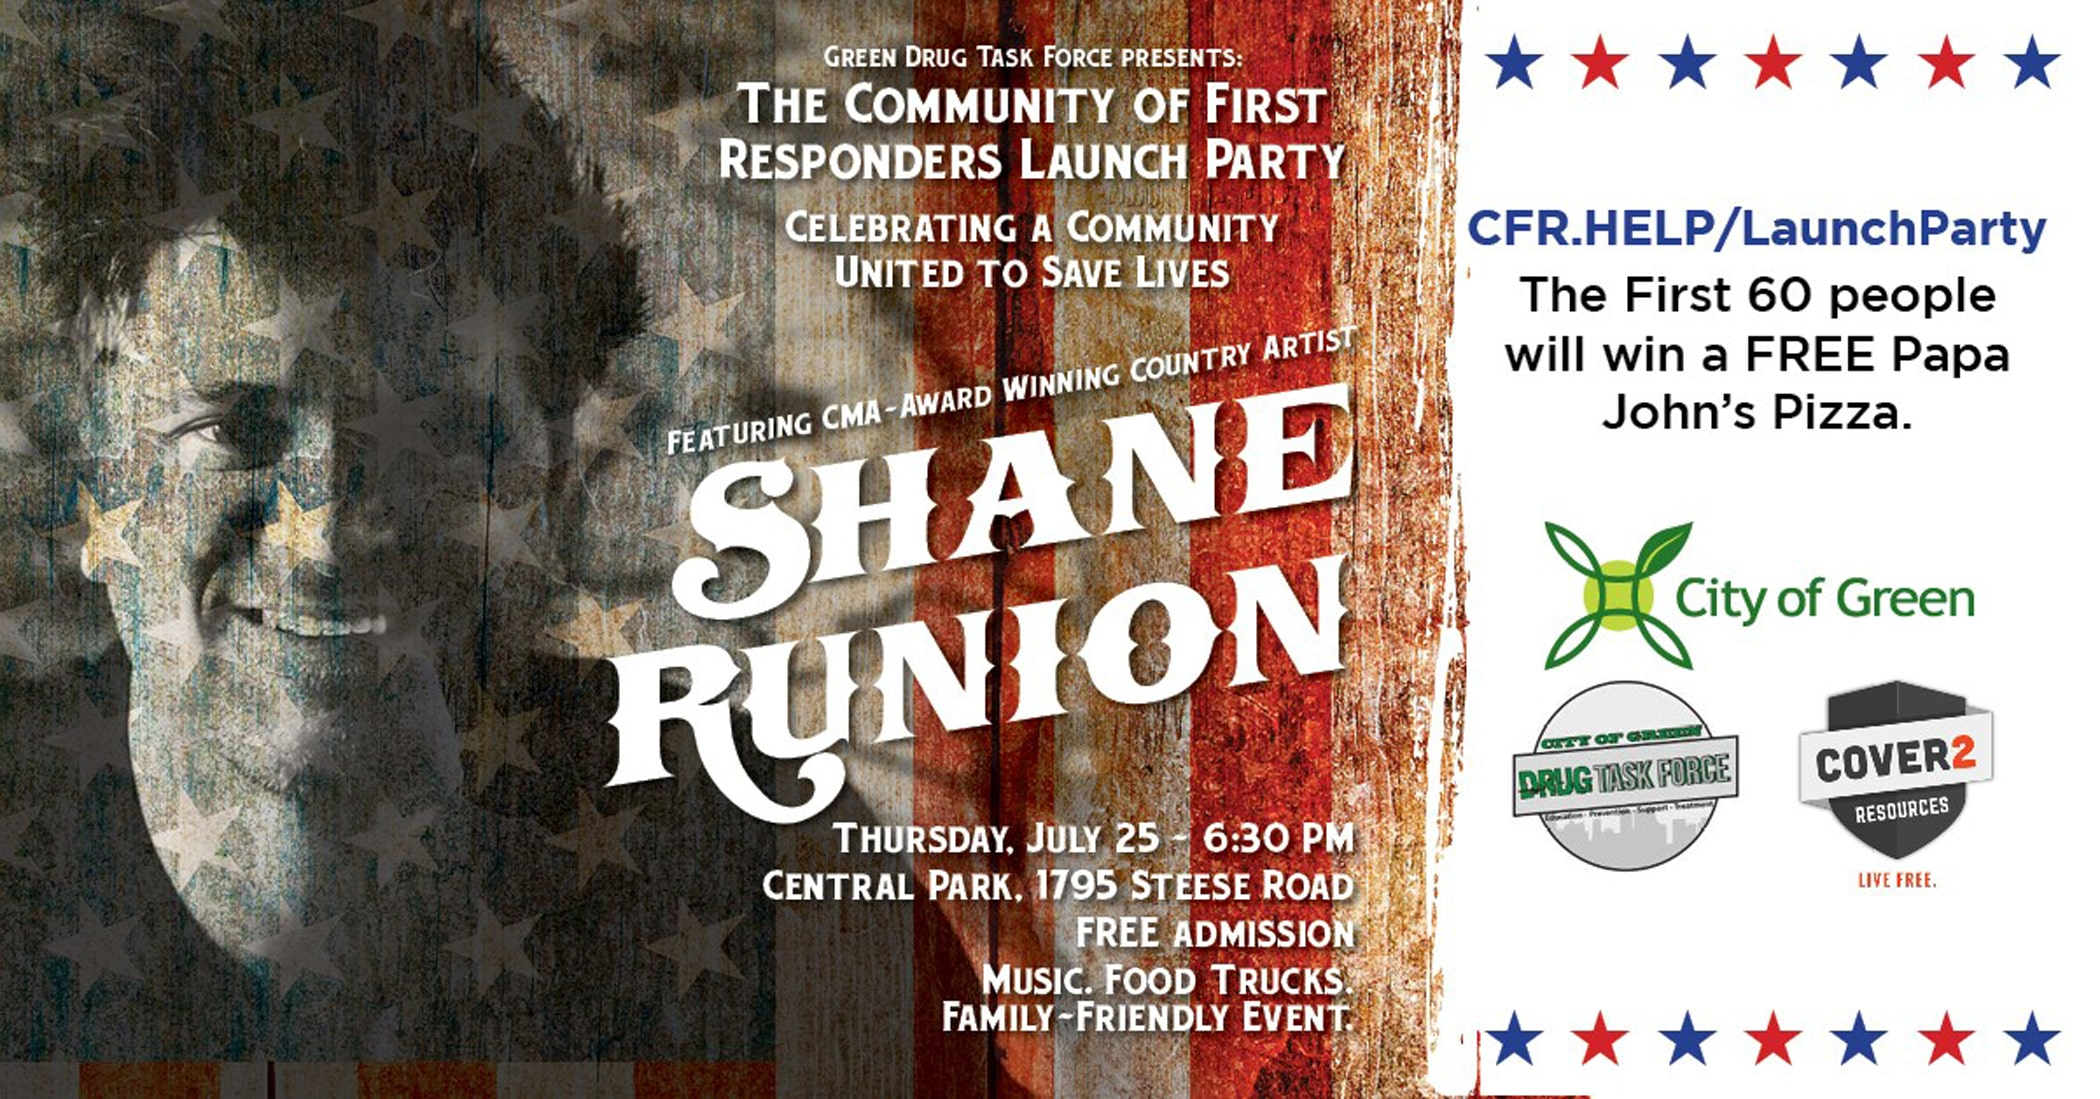 The Community Of First Responders Launch Party